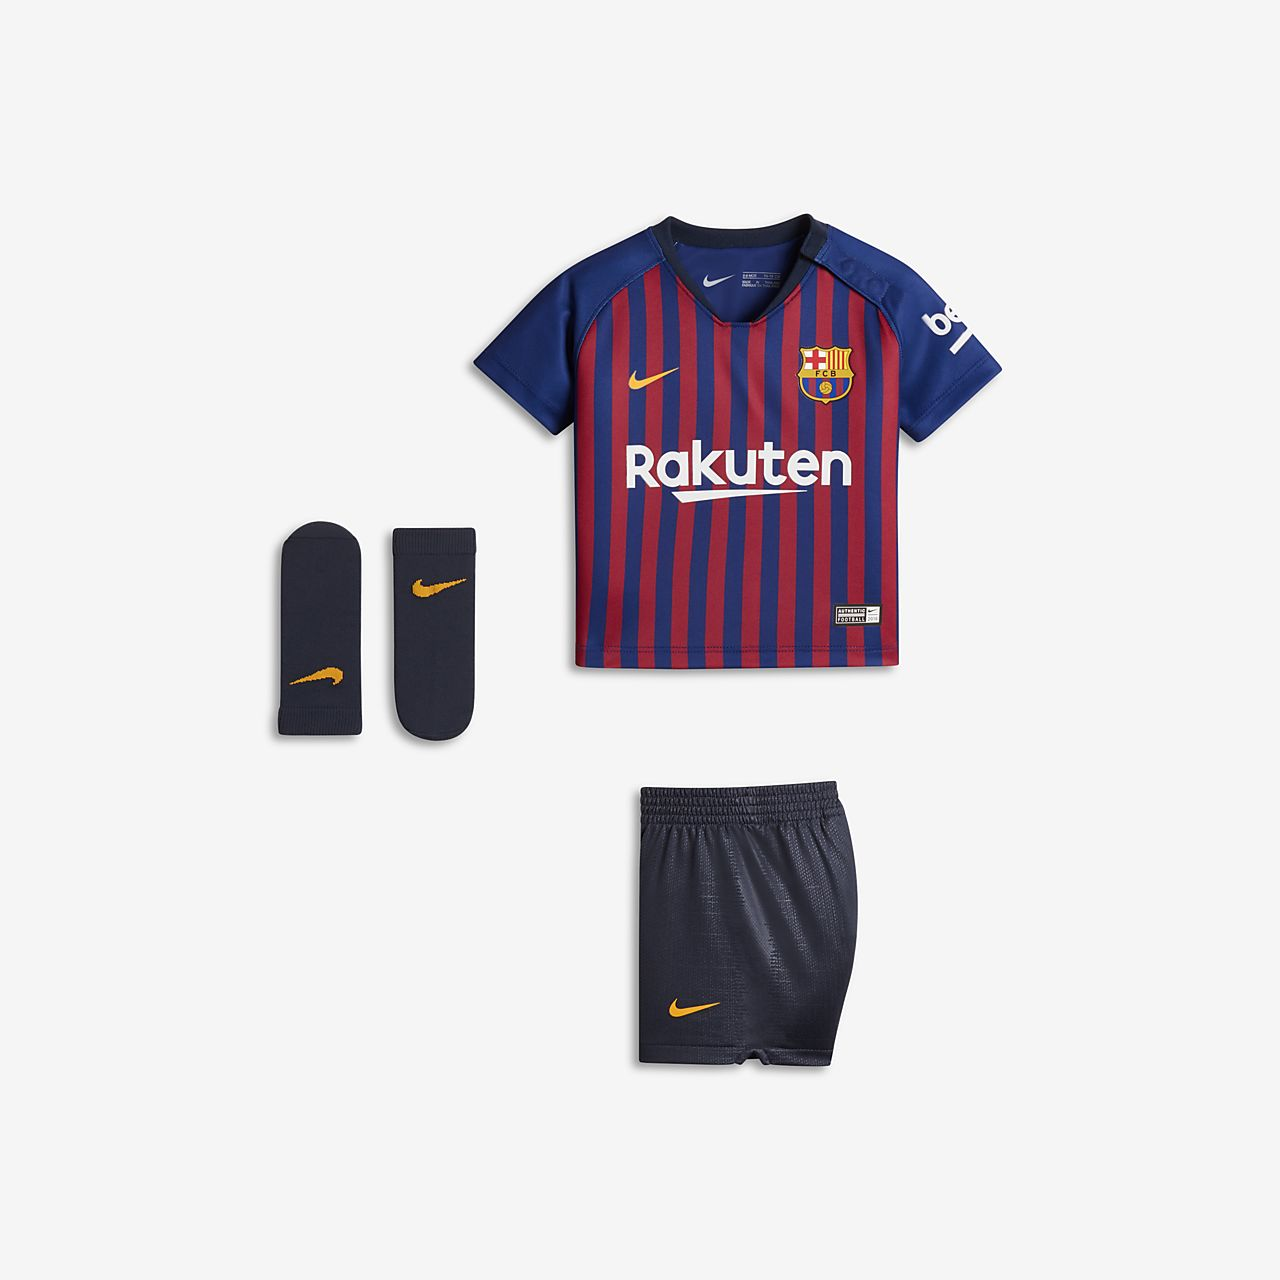 f9e9a4e8f 2018 19 FC Barcelona Stadium Home Baby Football Kit. Nike.com ZA